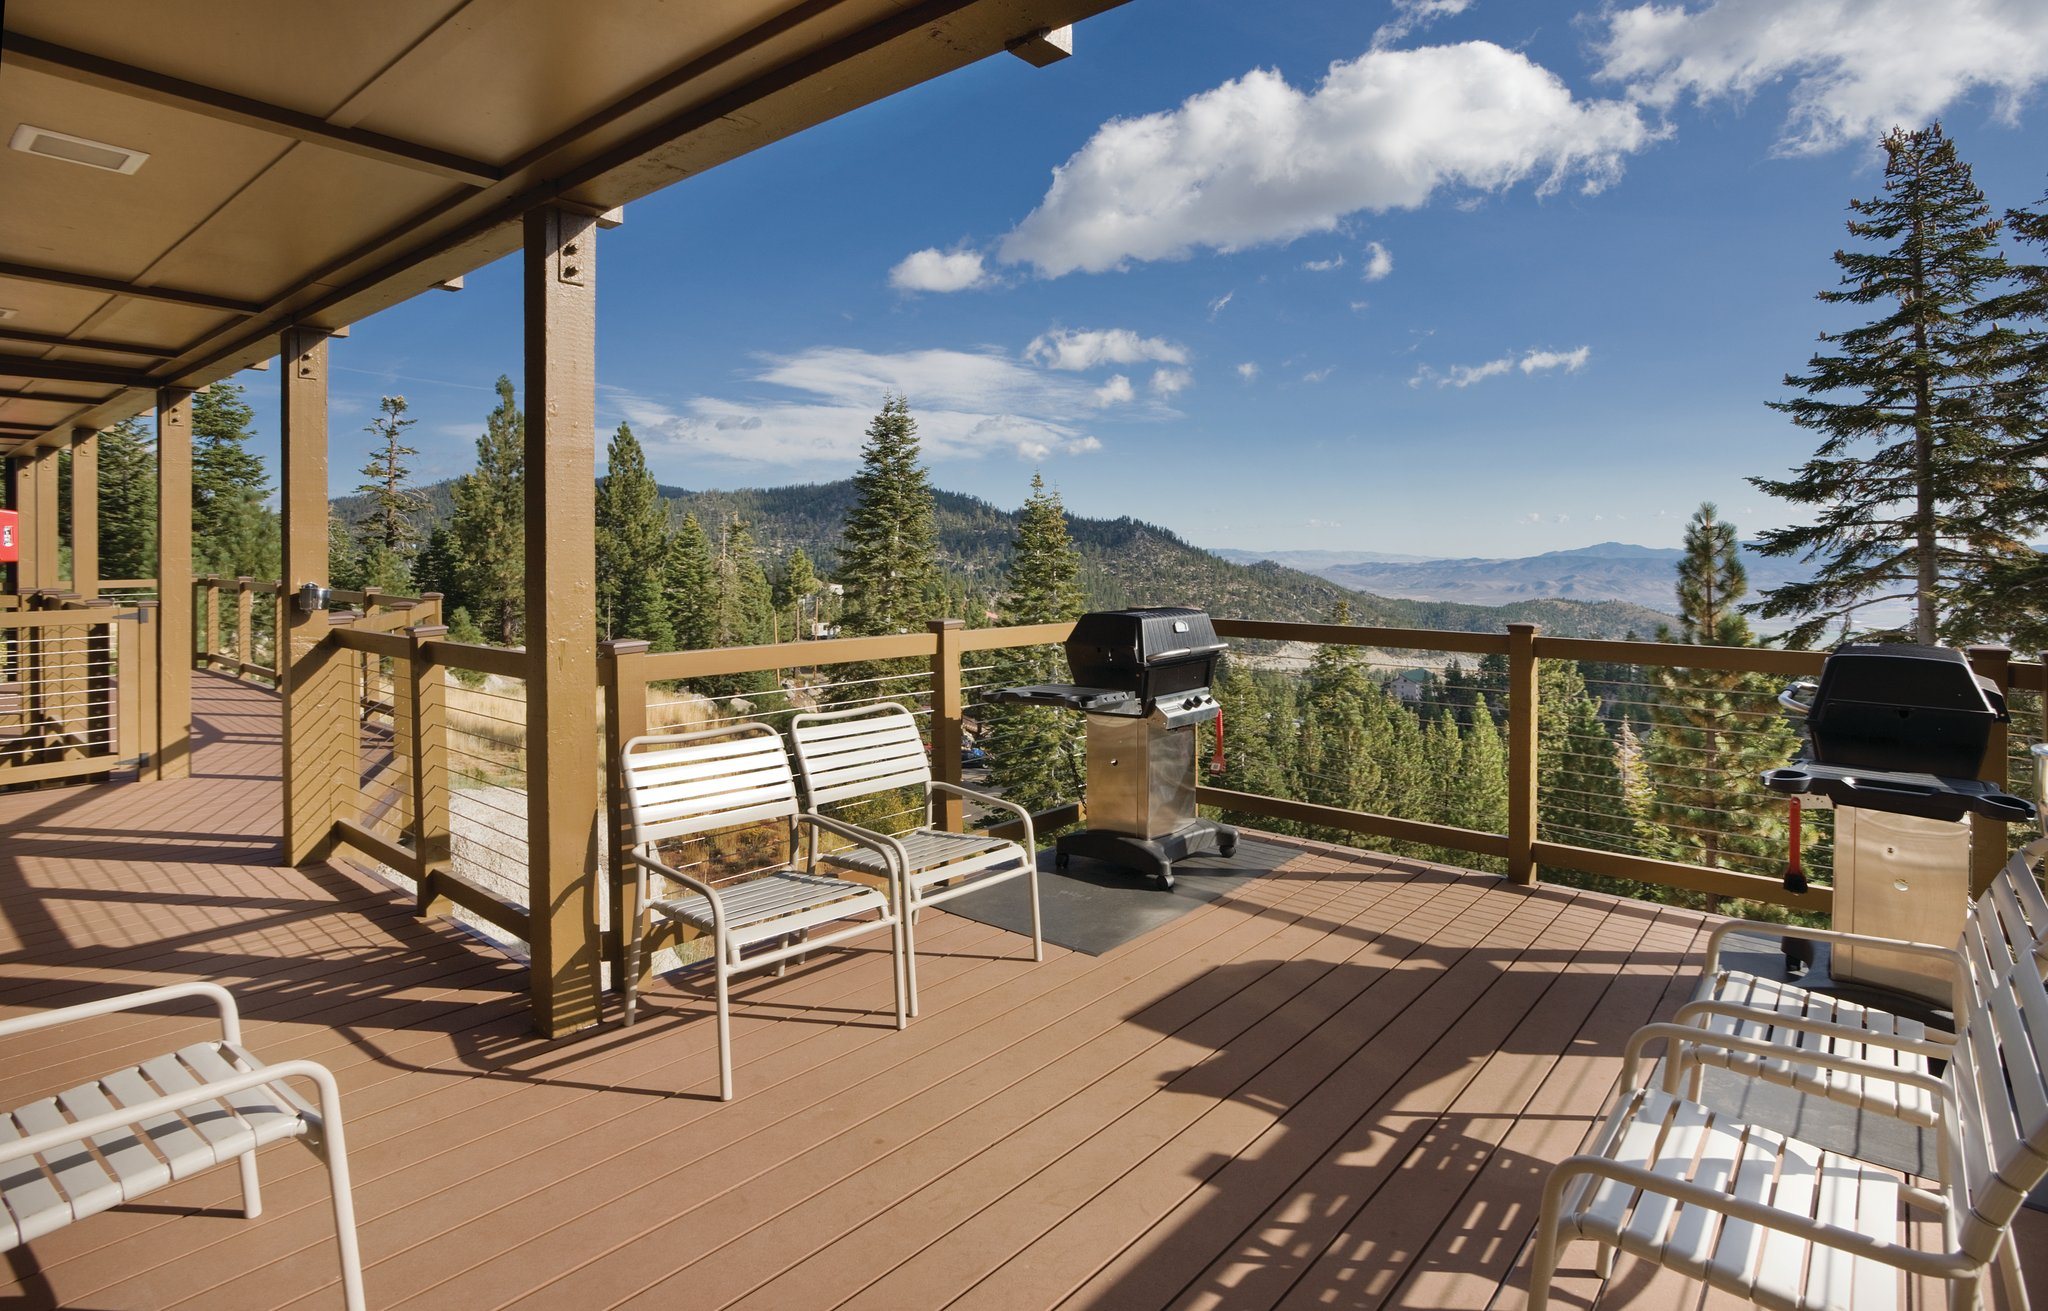 WorldMark Lake Tahoe | Wyndham Extra Holidays